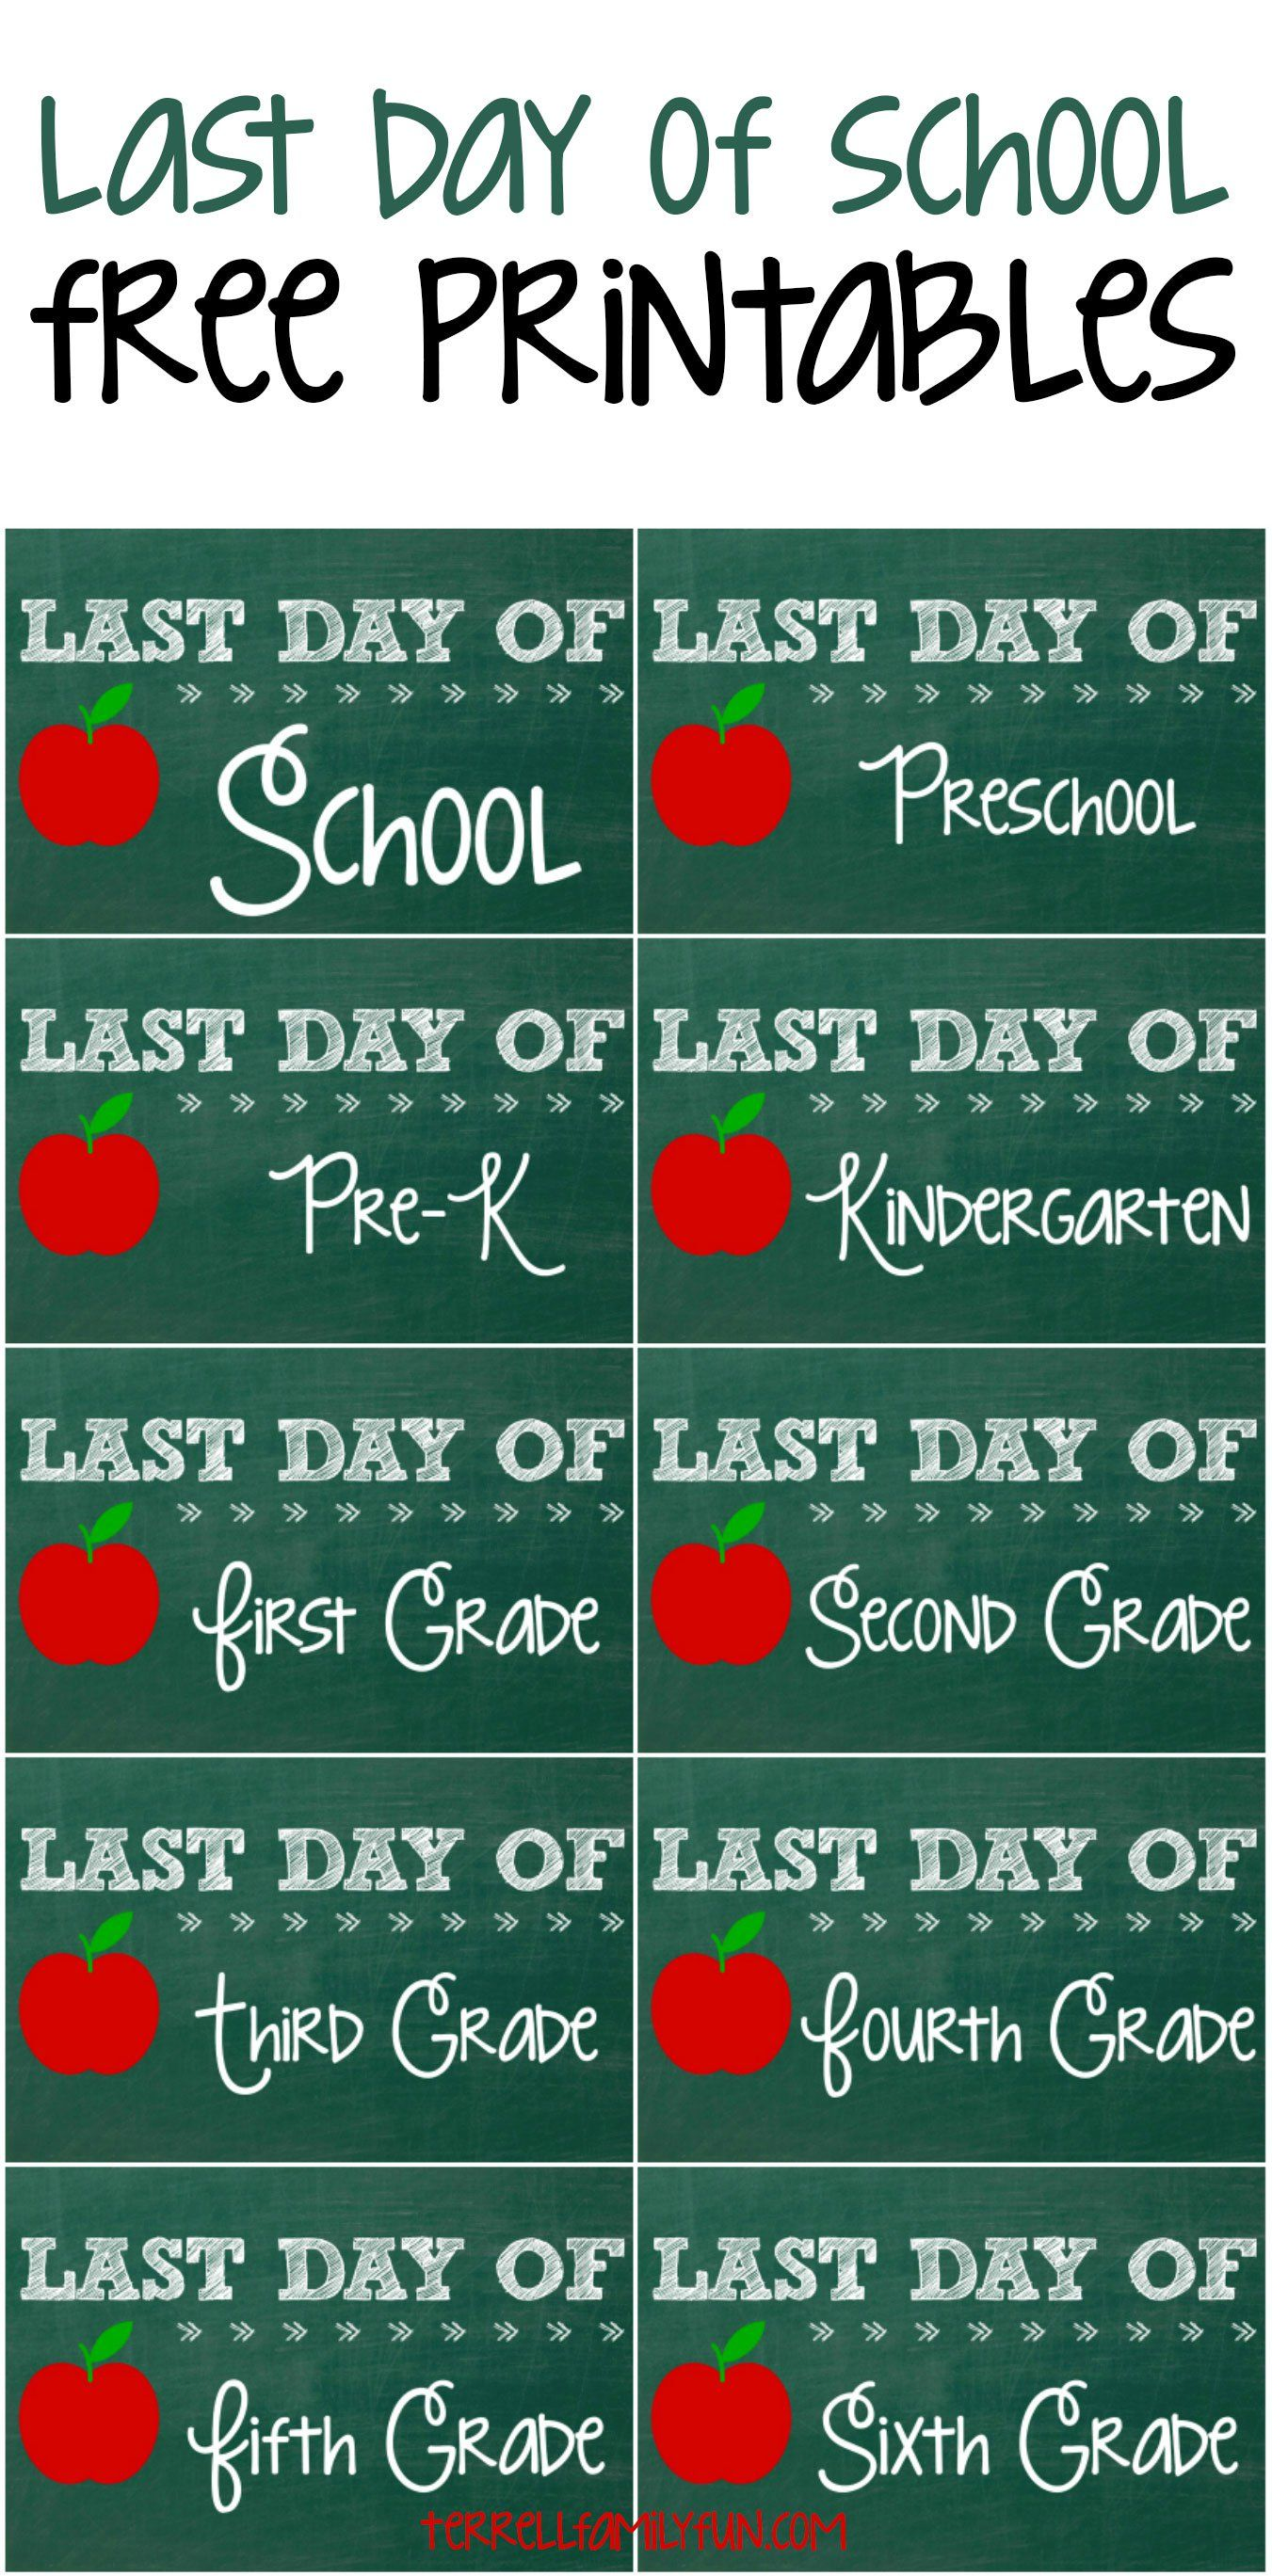 Free Last Day Of School Printables